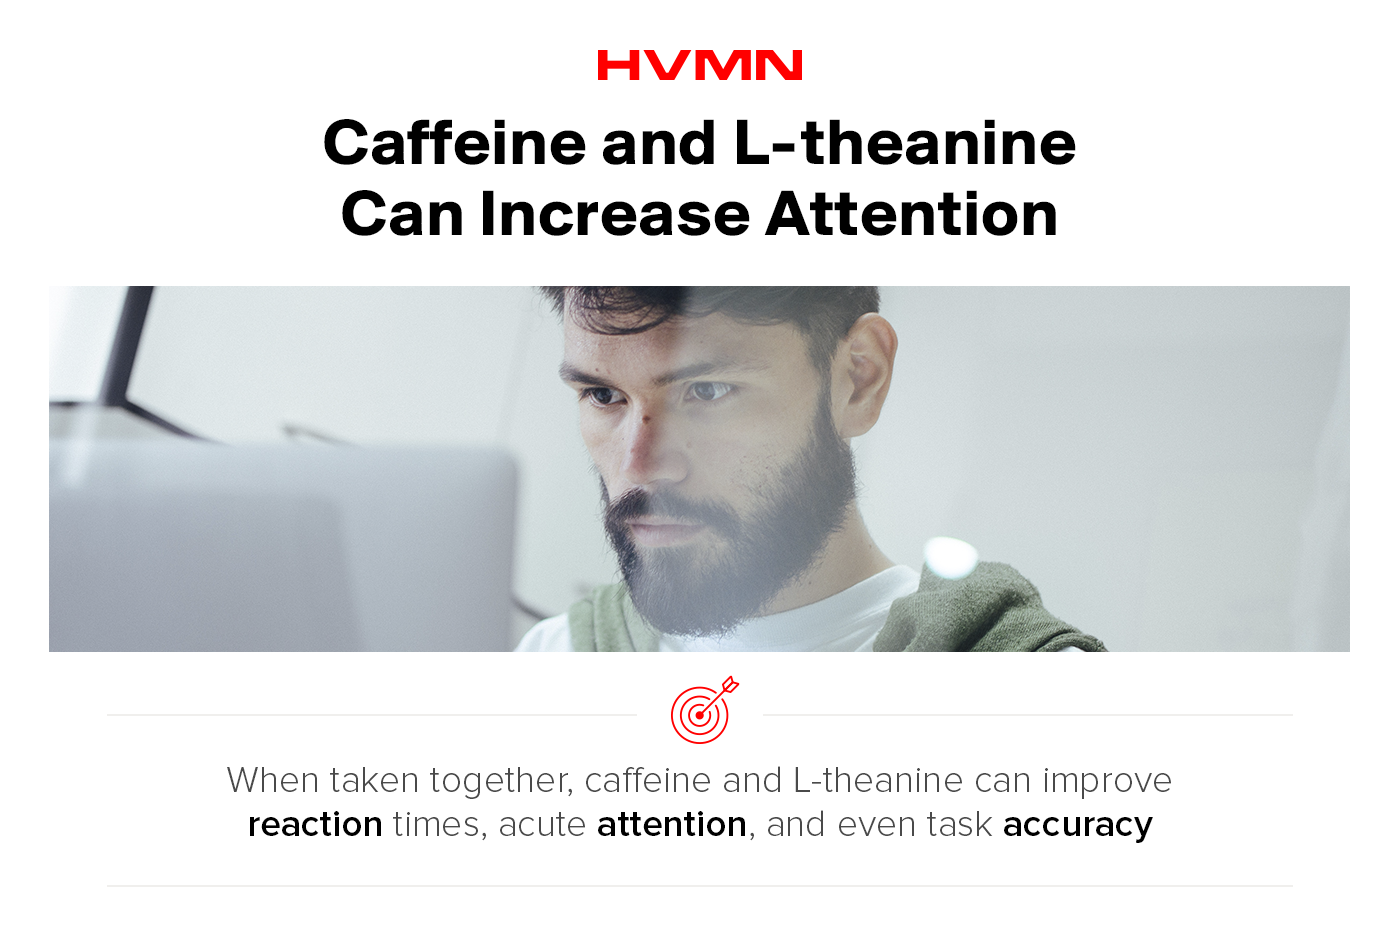 A man looking at his computed, deep in thought. This shows the benefits of using caffeine and l-theanine to increase attention.